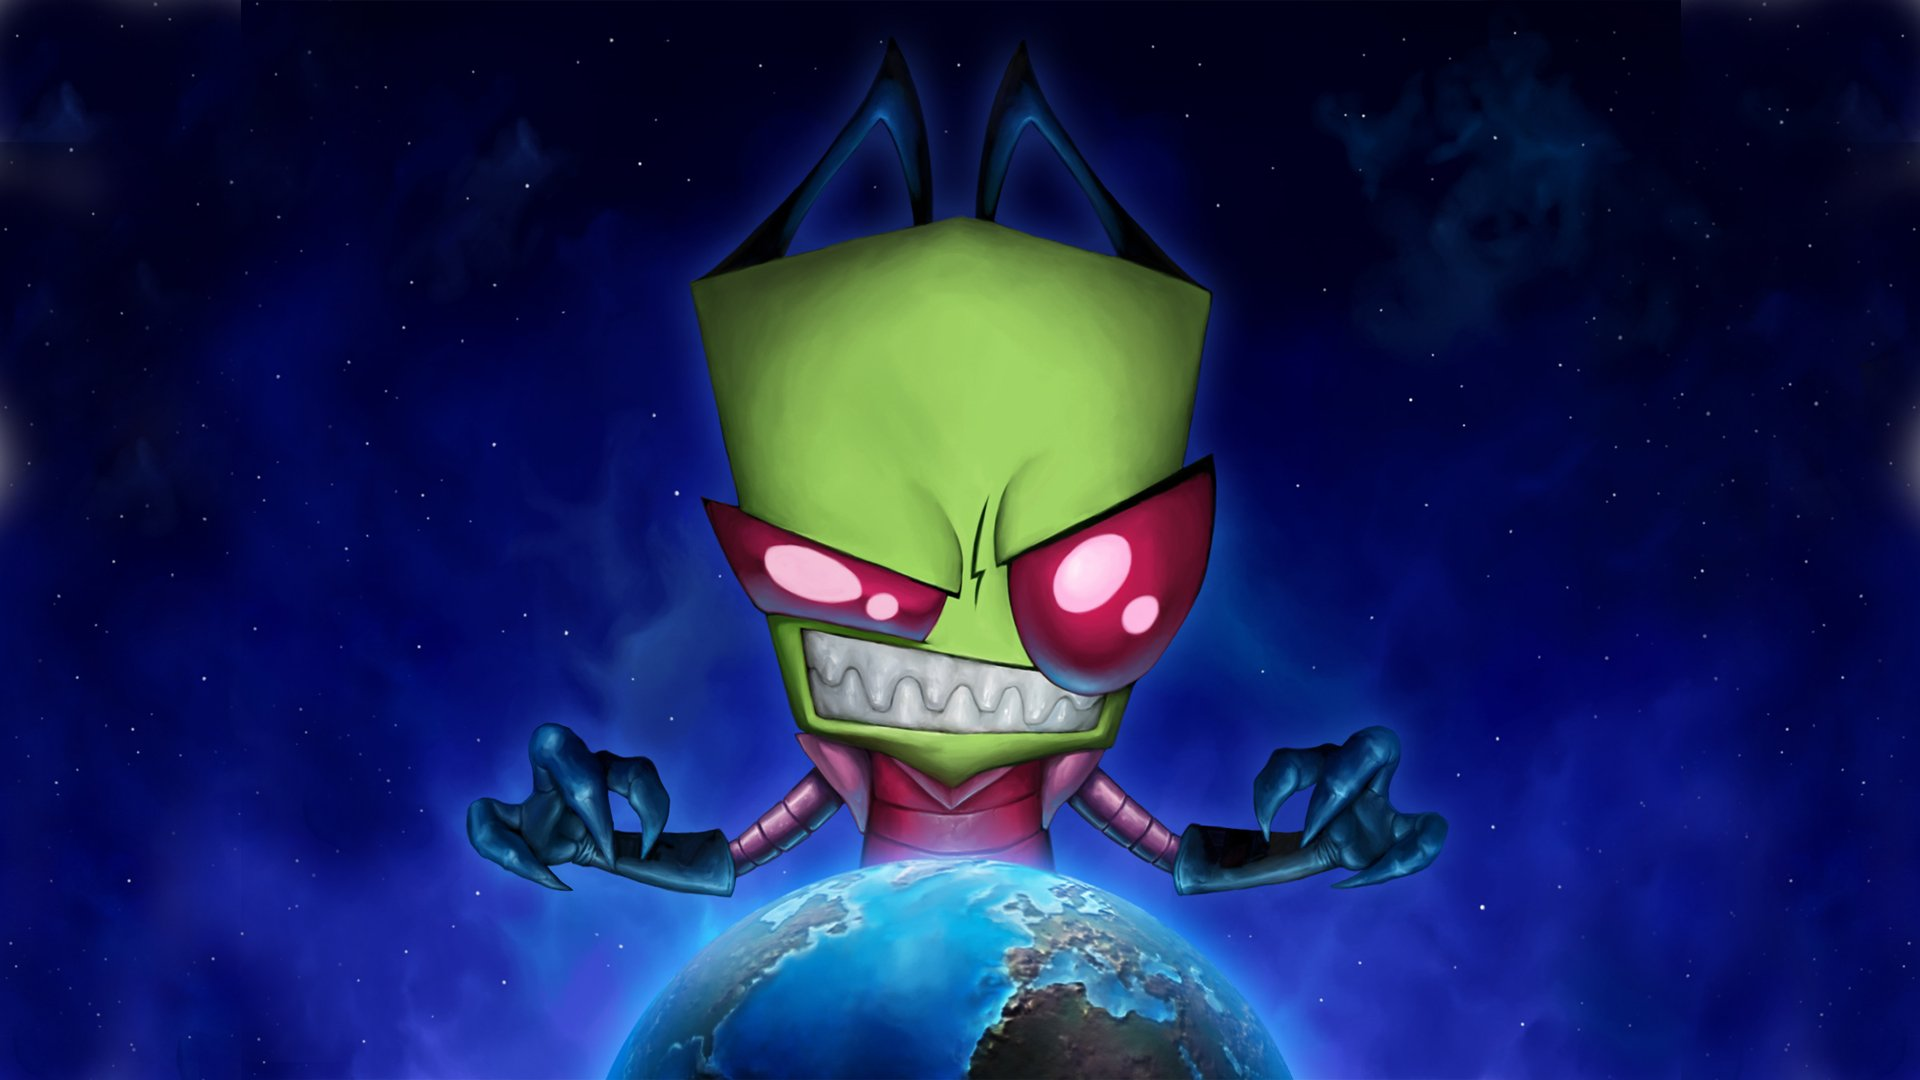 cartoons-alien-eyes-red-earth-invader-images-1920%C3%971080-wallpaper-wp3603943